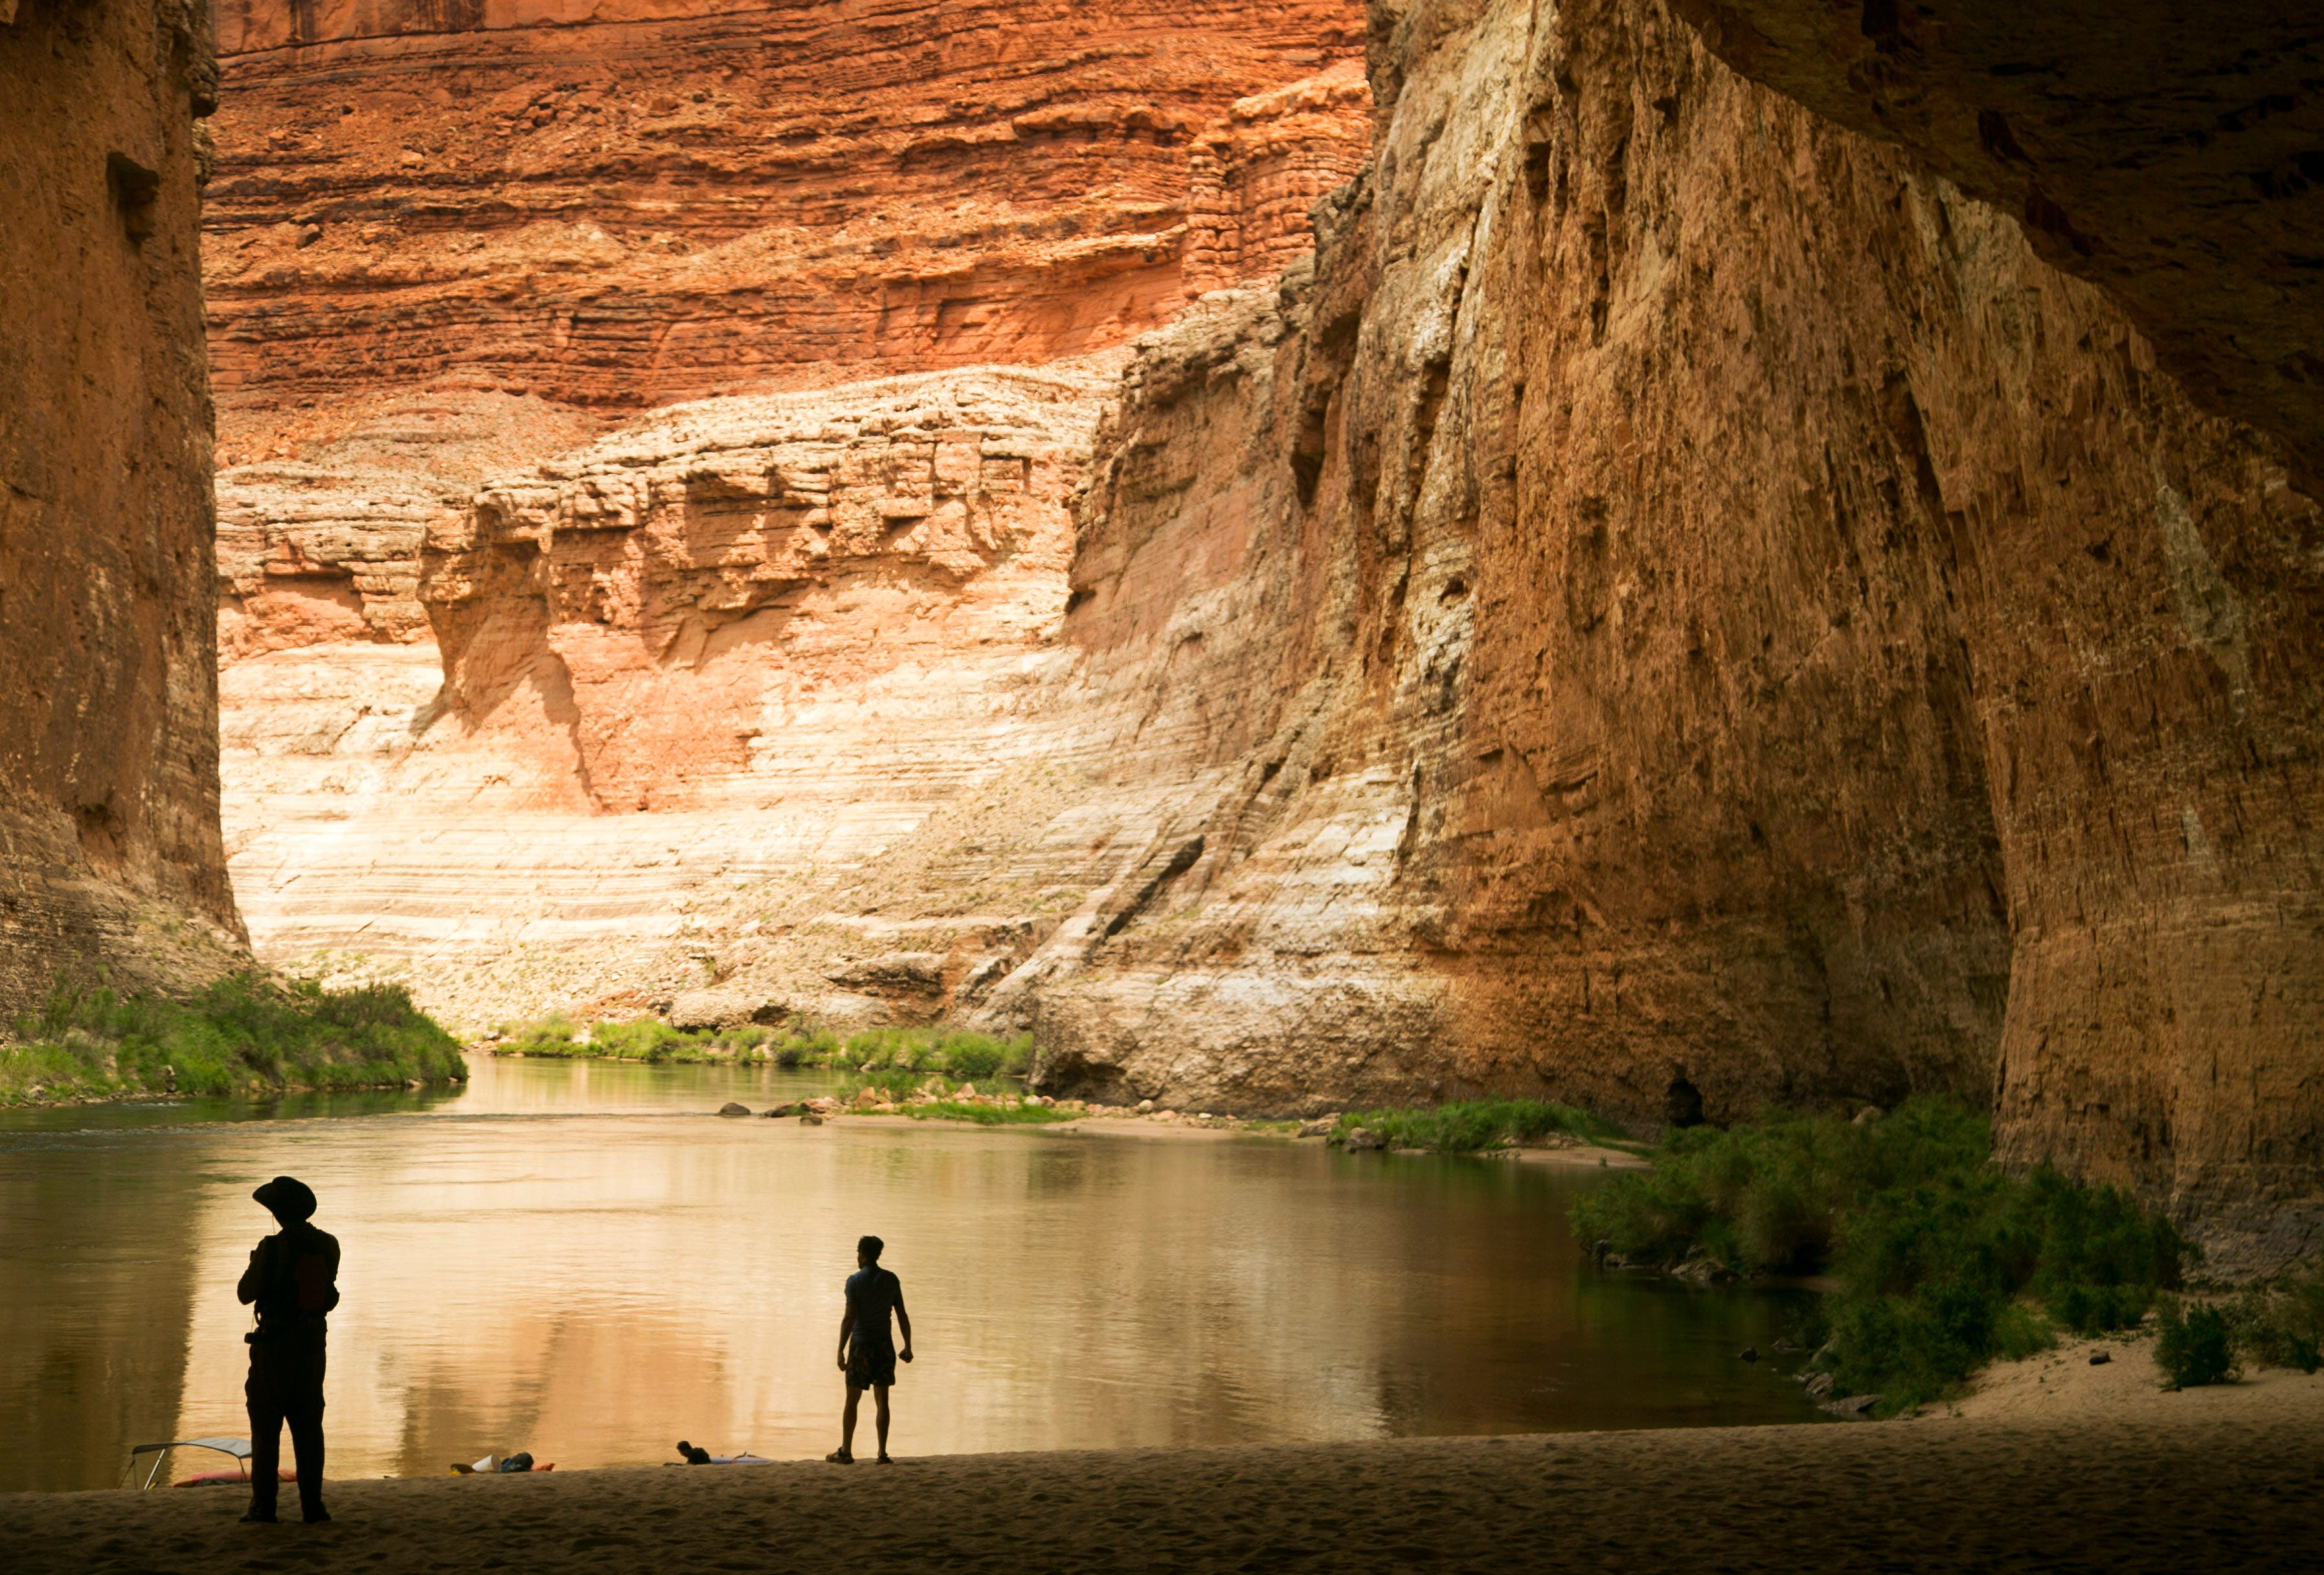 River runners stand on the banks of the Colorado River at Redwall Cavern in Grand Canyon National Park. Water releases that are meant to help rebuild beaches and sandbars in the Canyon often turn up mixed results.